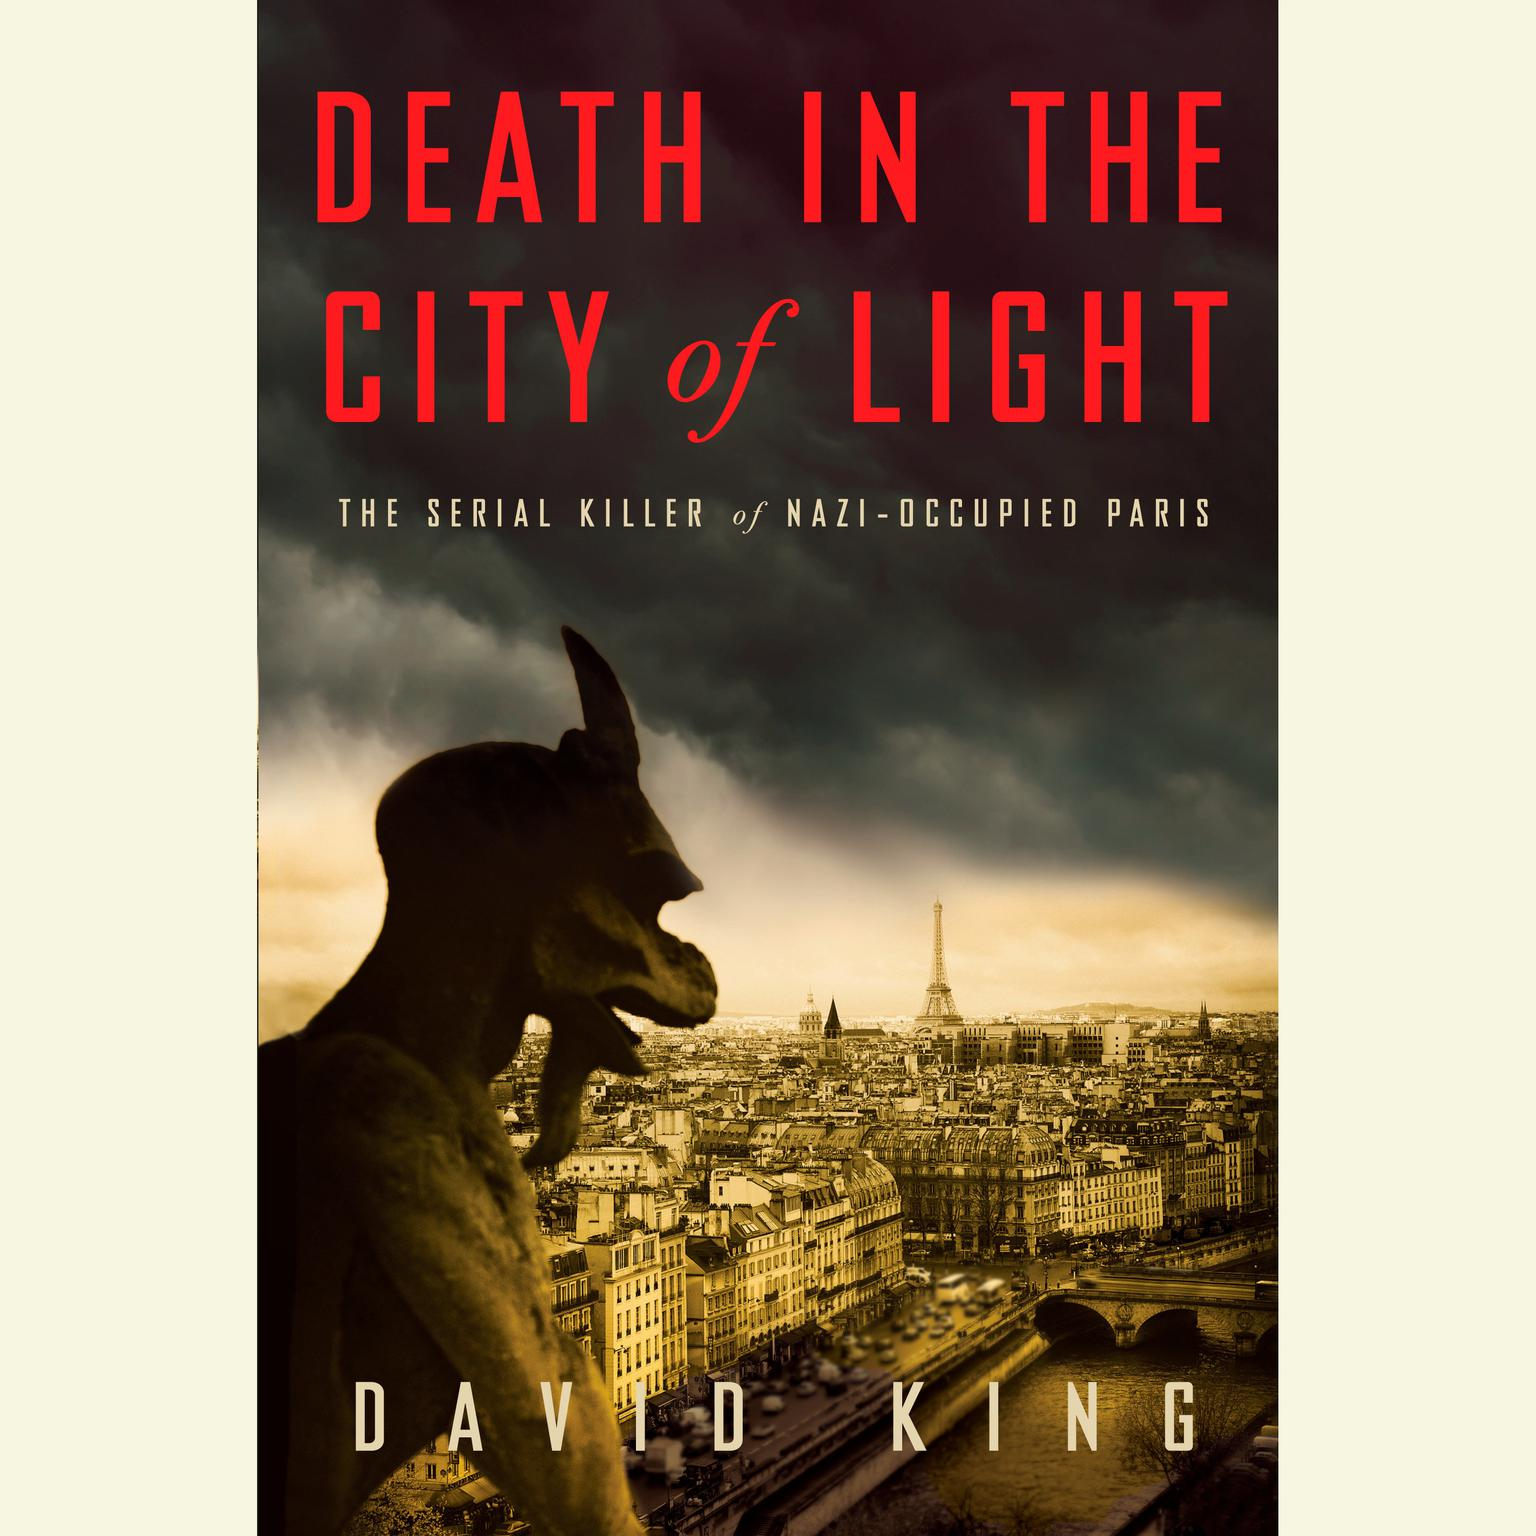 Printable Death in the City of Light: The Serial Killer of Nazi-Occupied Paris Audiobook Cover Art